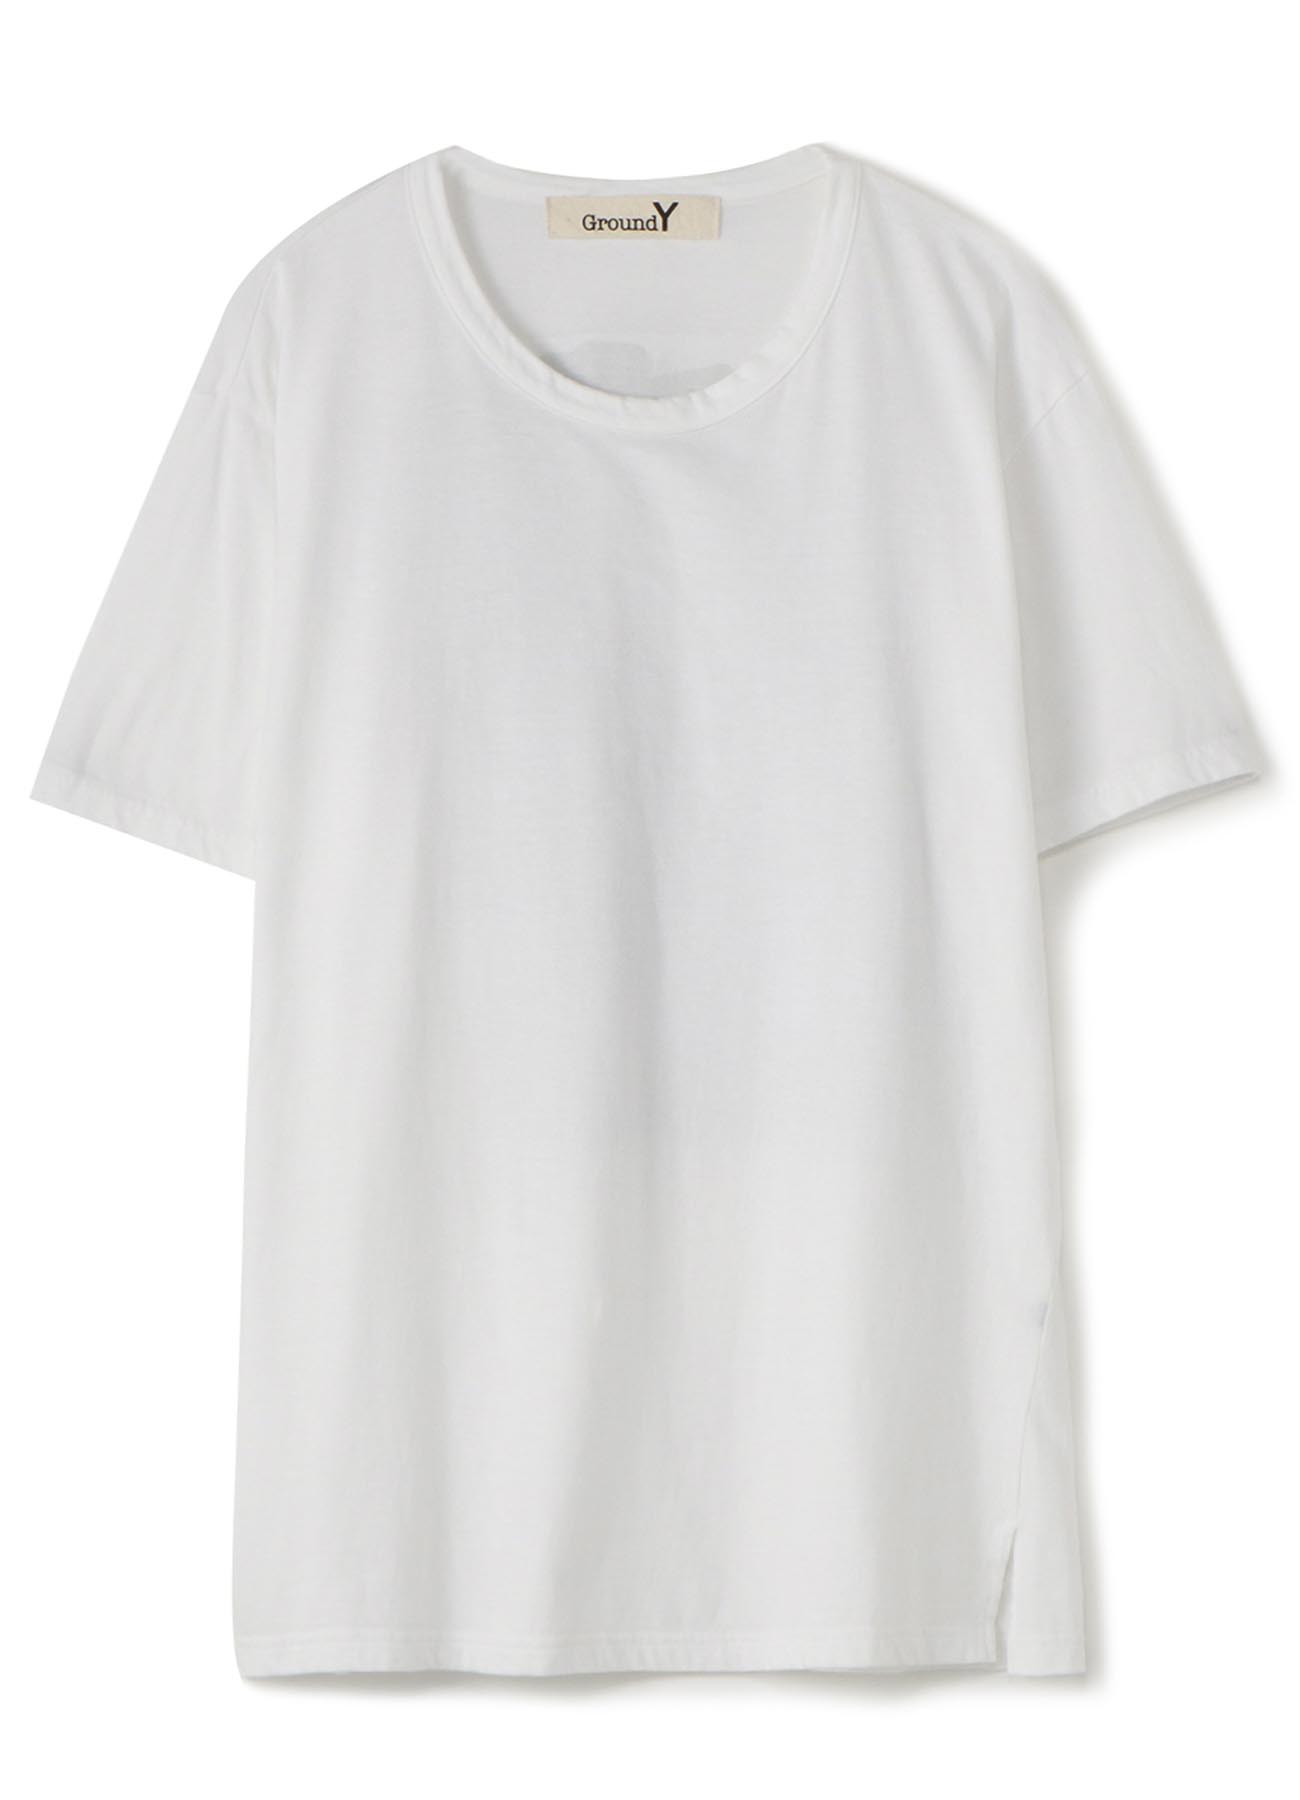 【THE SHOP Limited Edition】30/-Combed Cotton Jersey Graphic T 「Lord I'm not happy being here.」